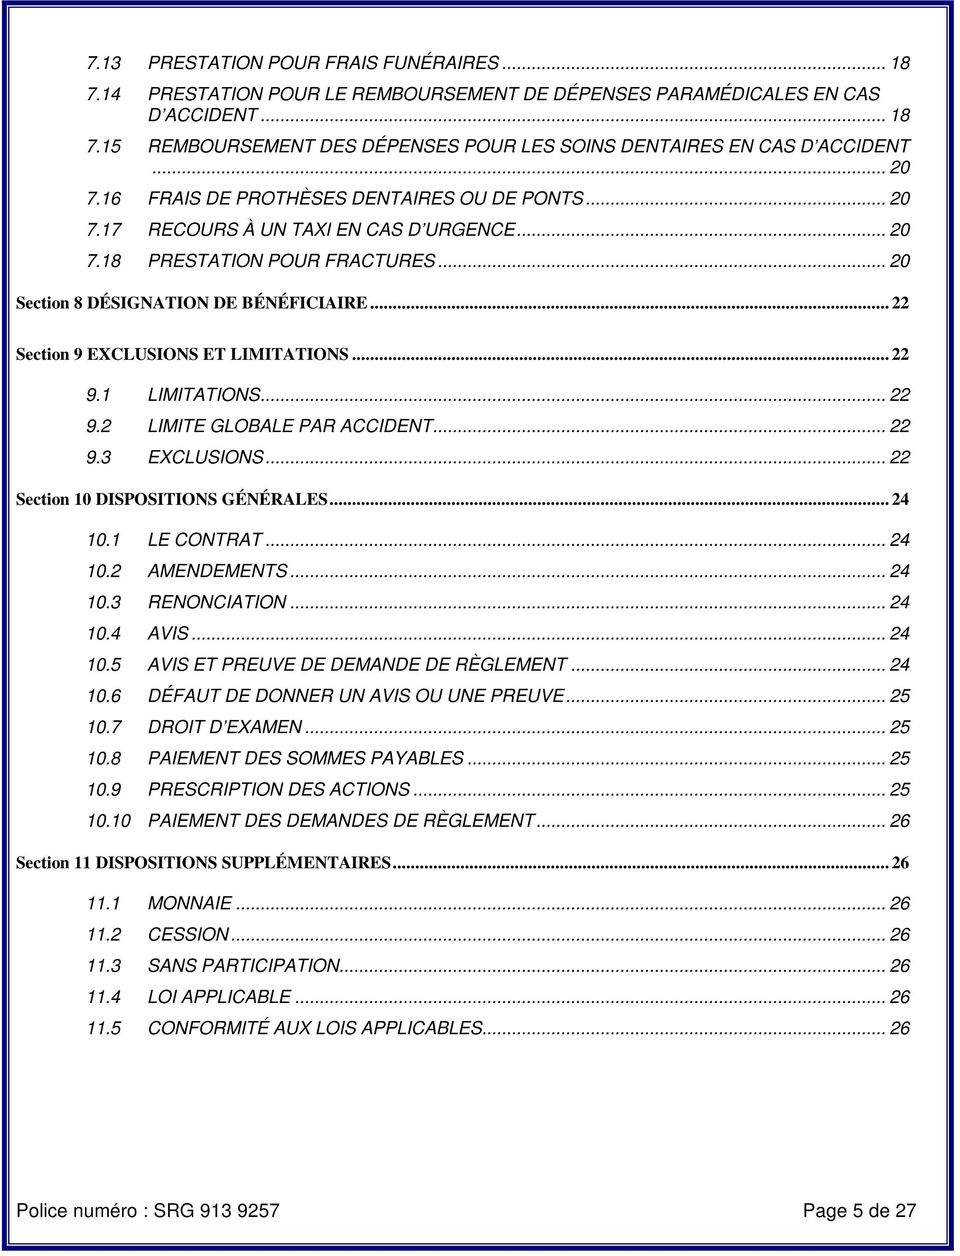 .. 22 Section 9 EXCLUSIONS ET LIMITATIONS... 22 9.1 LIMITATIONS... 22 9.2 LIMITE GLOBALE PAR ACCIDENT... 22 9.3 EXCLUSIONS... 22 Section 10 DISPOSITIONS GÉNÉRALES... 24 10.1 LE CONTRAT... 24 10.2 AMENDEMENTS.